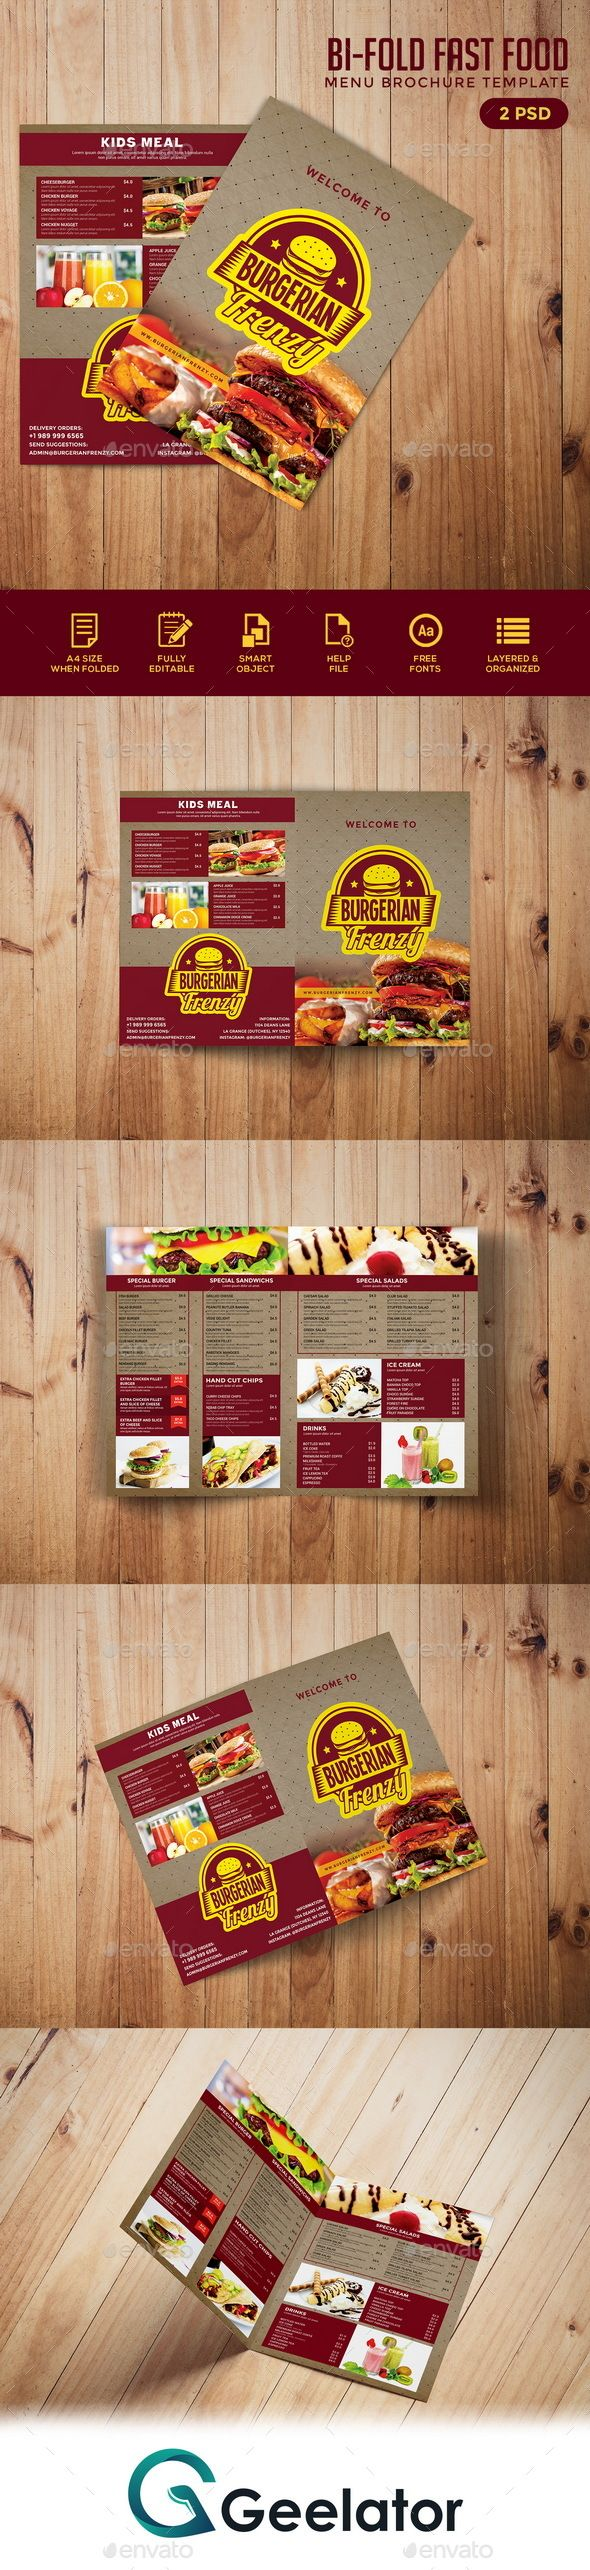 Bifold Fast Food Menu Brochure Template - #fastfood #truckfood #streetfood #food #restaurant #delicious #shop #seafood #gourmet #grunge #menu #foodmenu #brochure #brochuremenu #eat #dinner #breakfast #lunch #homemade #cafe #pub #bar #restaurantdesign #restaurantmenu #salad #appetizer #nusantara #rendang #indonesia #makananindonesia